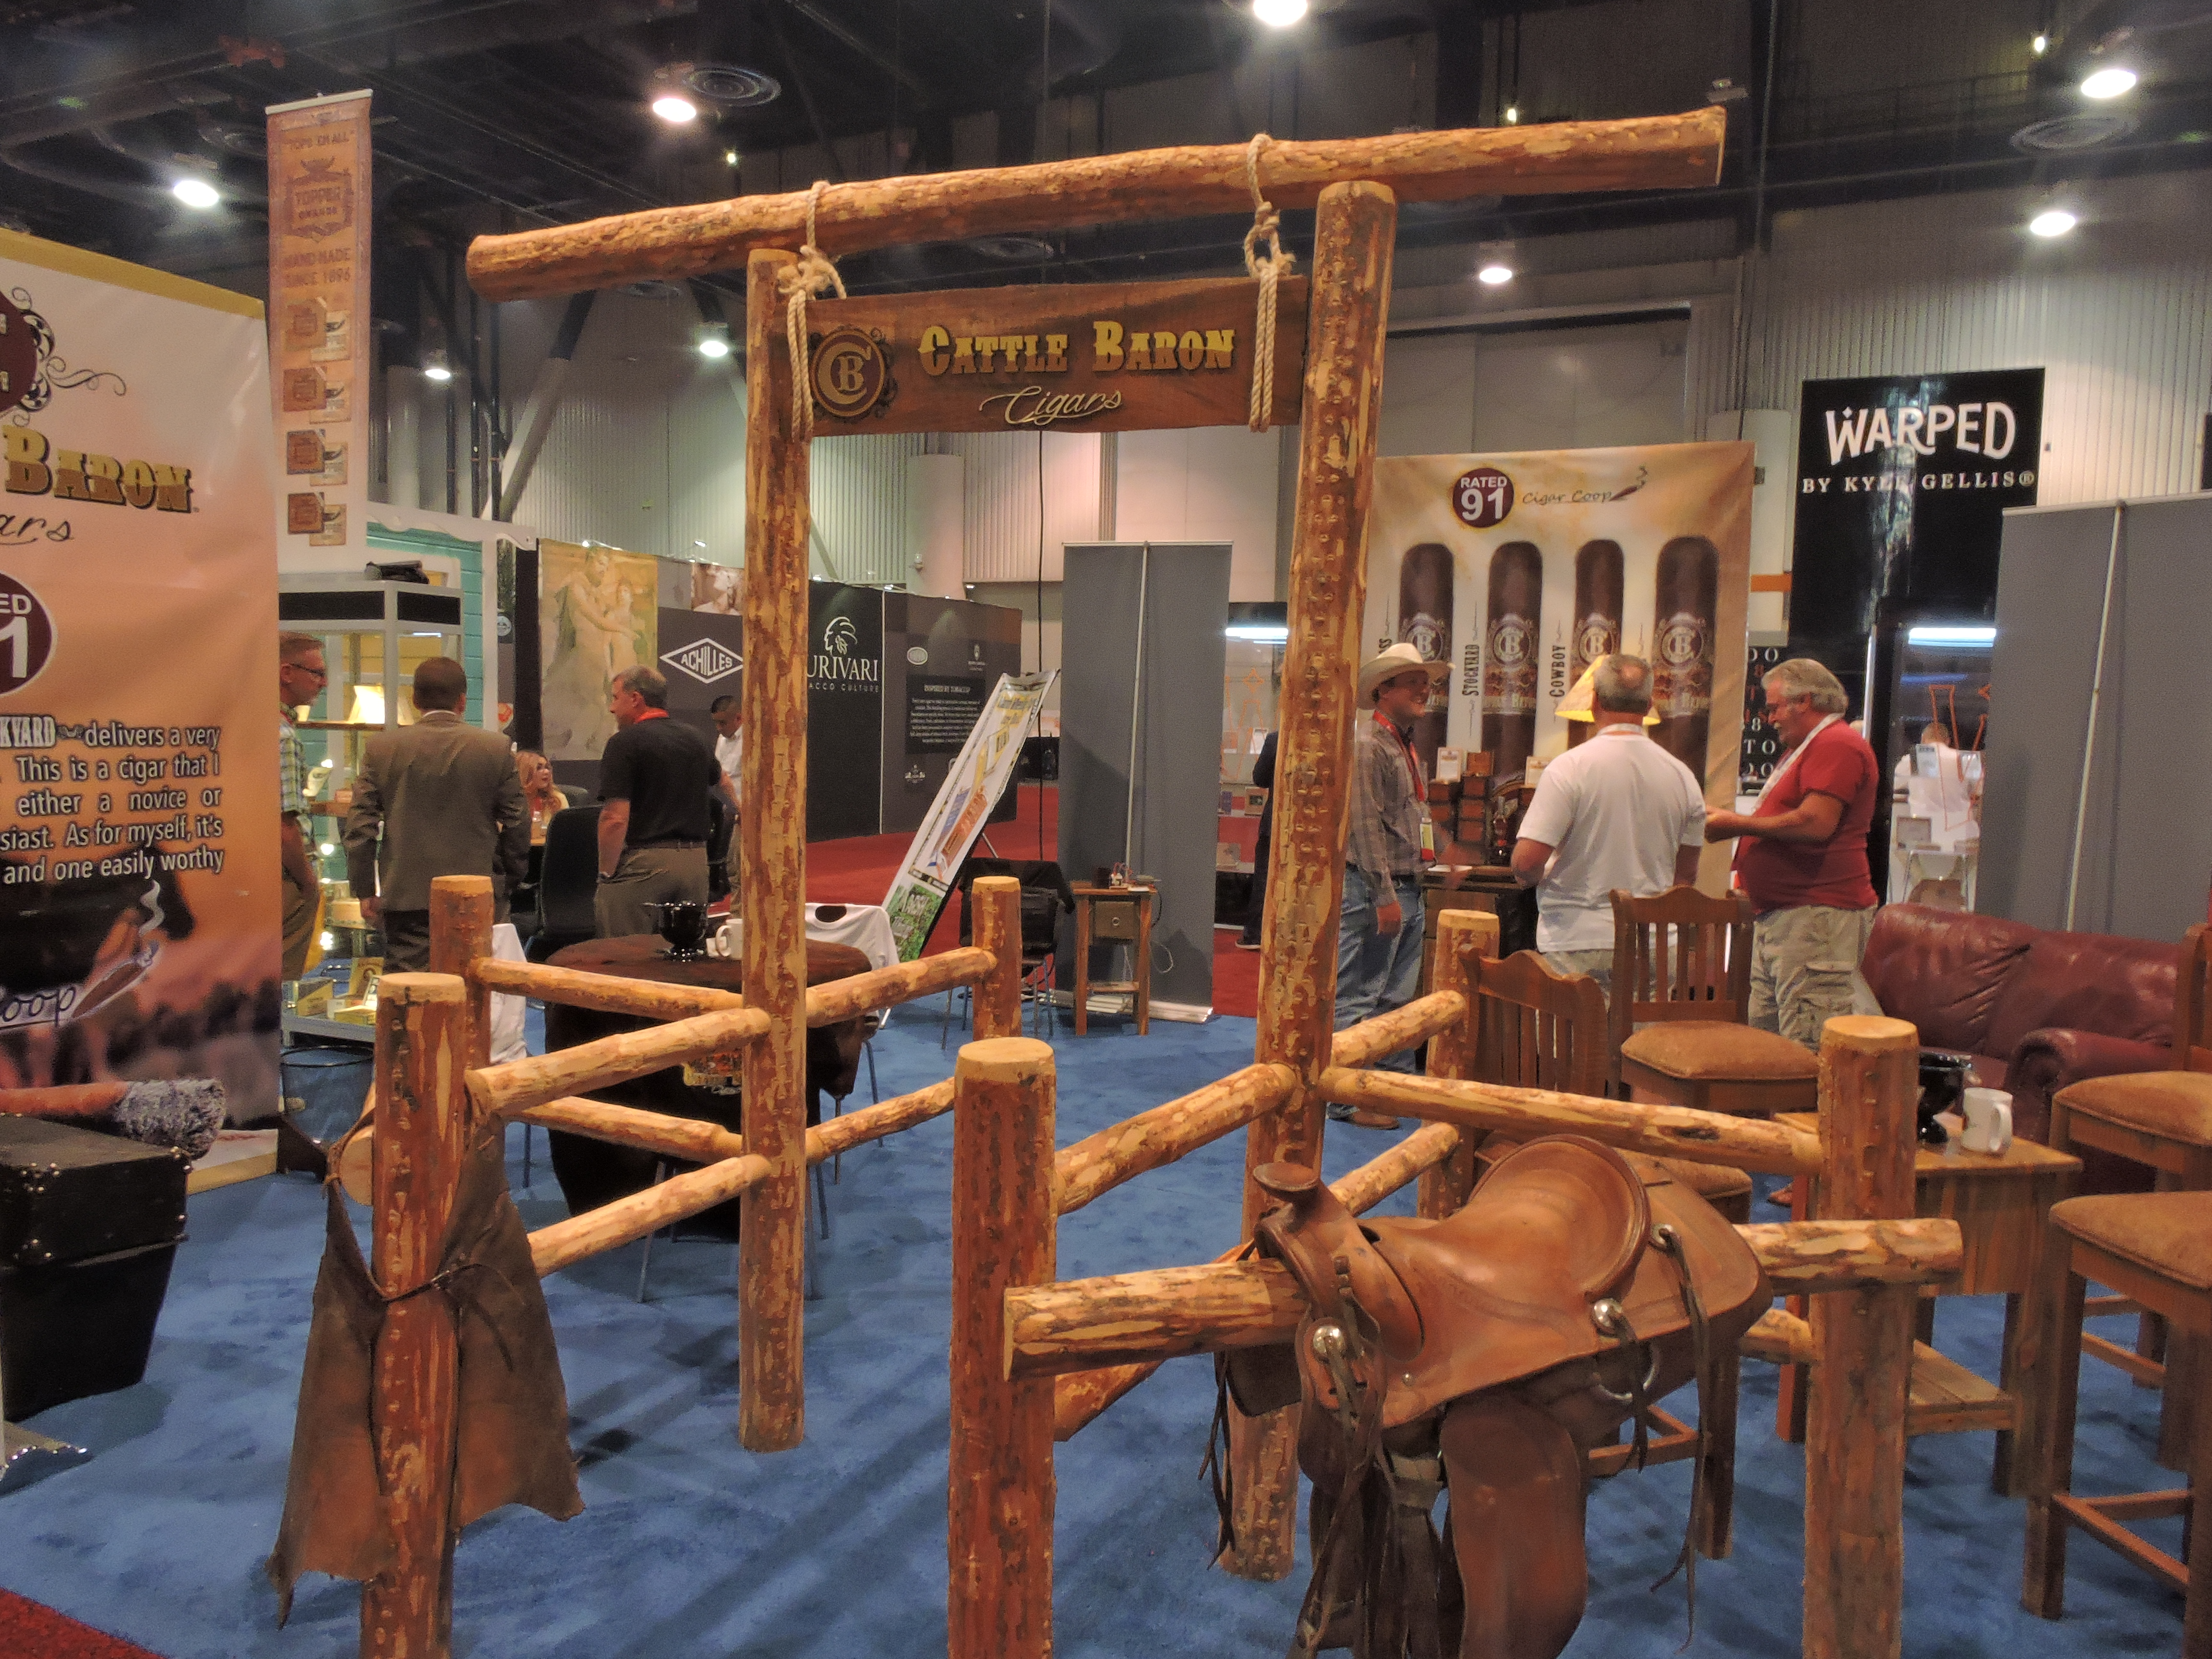 Feature Story: Spotlight on Cattle Baron Cigars at the 2018 IPCPR